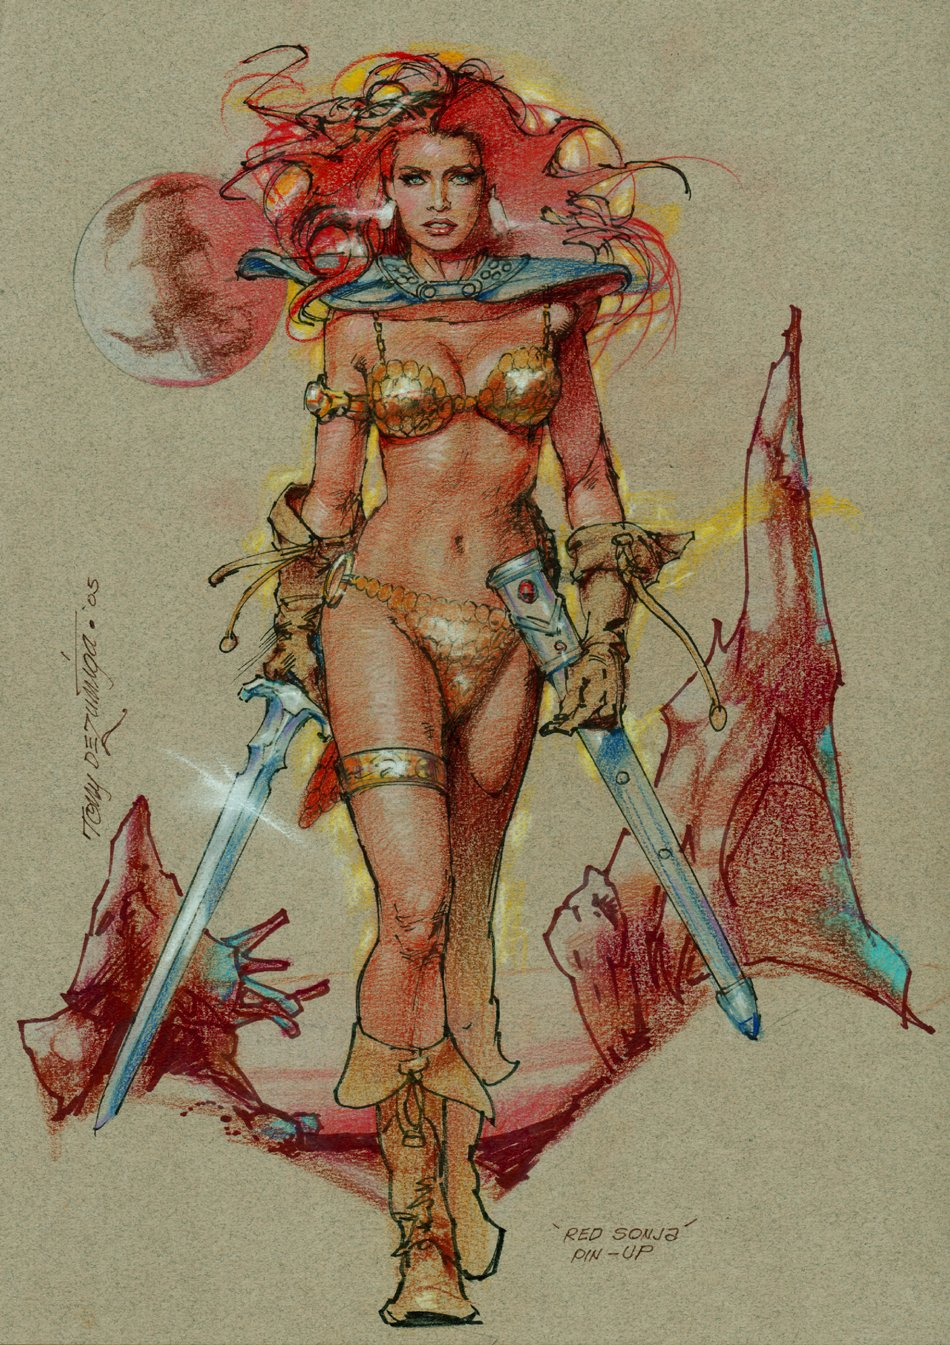 Red Sonja Mixed Media Colored Pinup (2005)